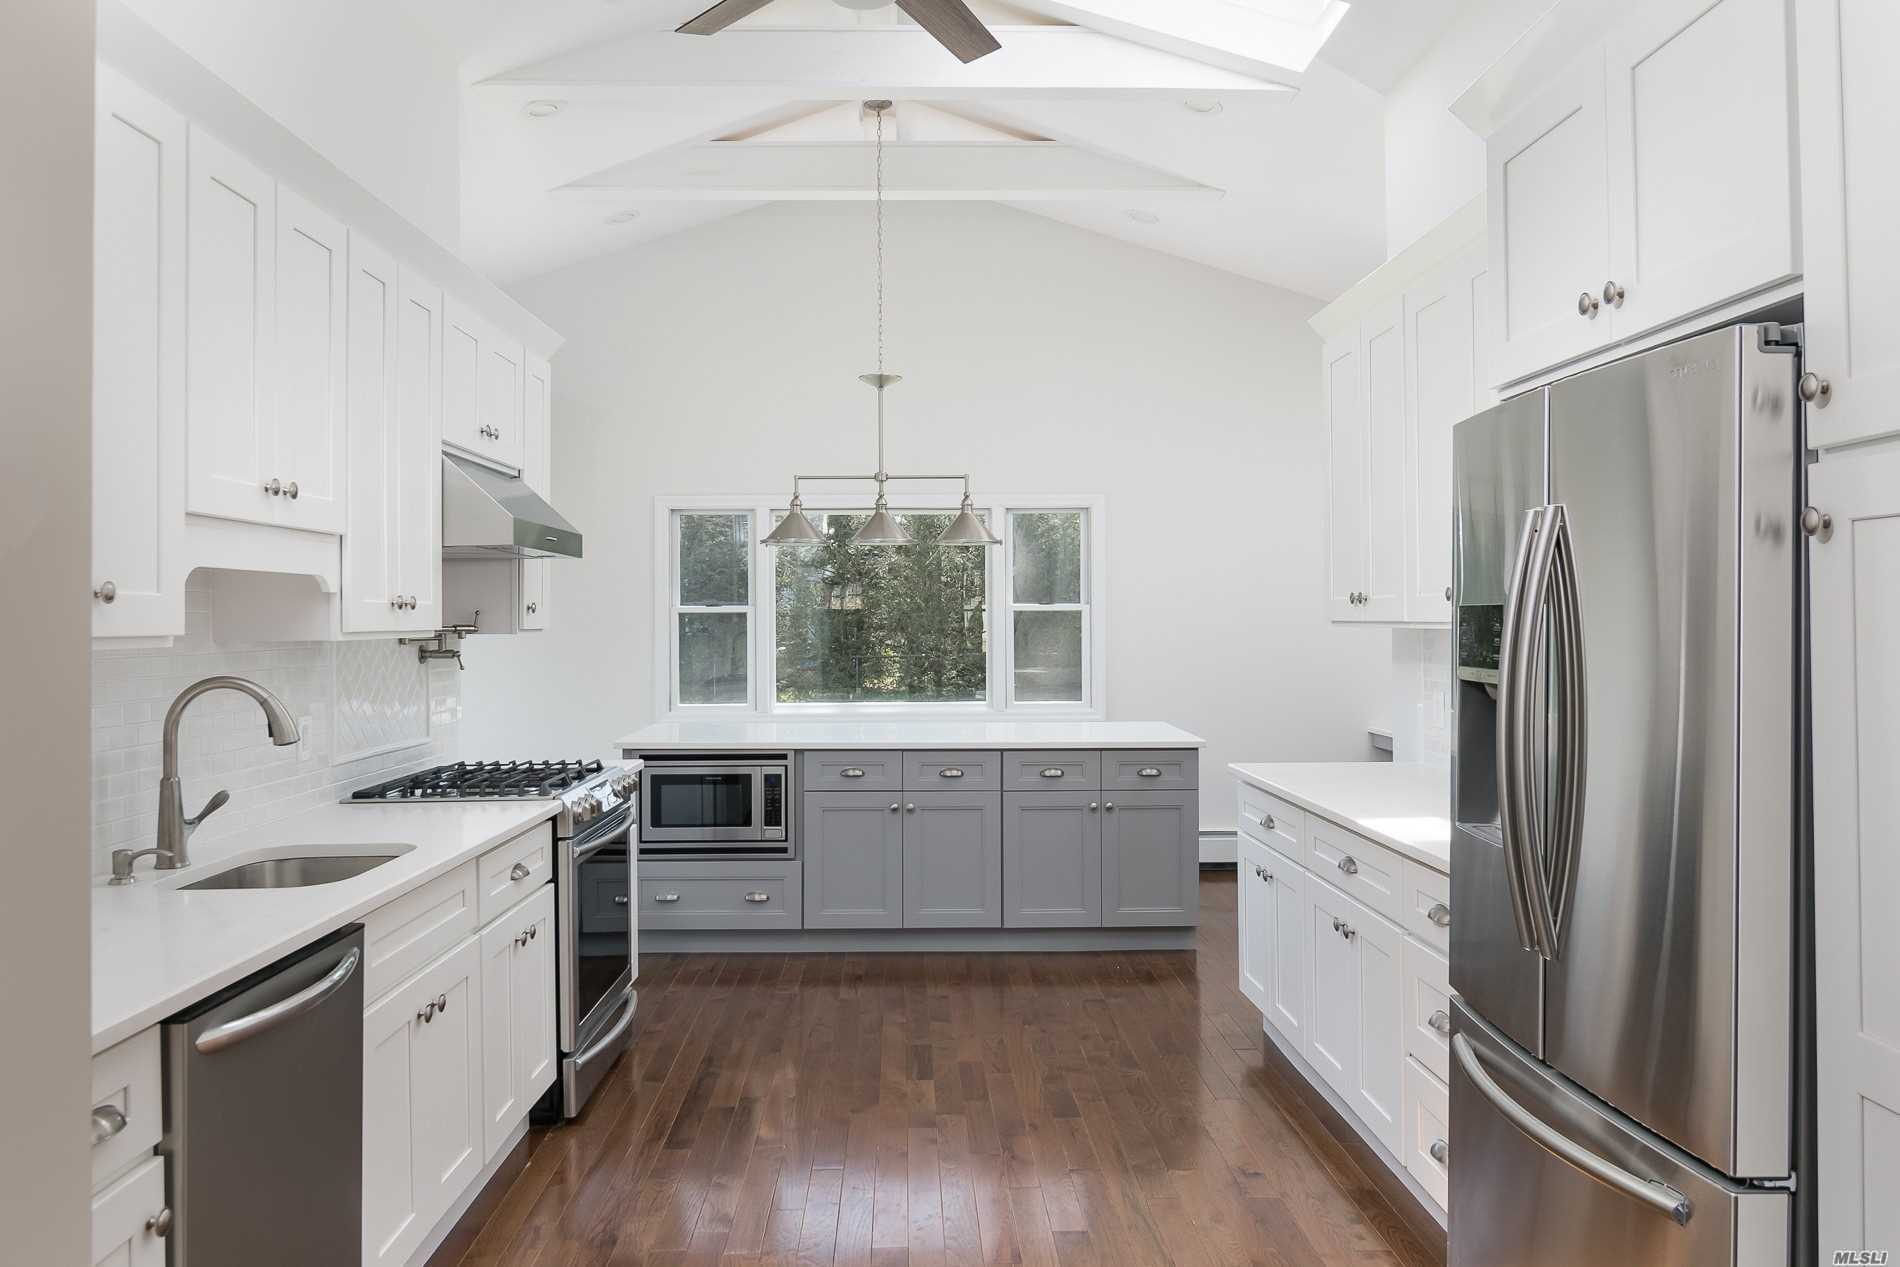 Outstanding Architectural Elements! Open Floor Plan. Dramatic 12' Ceilings & High-End Details & Finishes. Totally Renov. One Of A Kind. Chef's Kitchen W/Quartz Counter Tops, Stainless, New Hw Floors, Wine Bar, Fenced, Ductless A/Cs & Cac, Fire Feature, King Master Suite W/ Wic. Fin. Basement W/ Full Bath. 4 Car Drive. Side Entrance To Basement. Create Your Resort Backyard On 80X130 Property. Quiet Block. Entertainers Dream! Dinkelmeyer Elem.